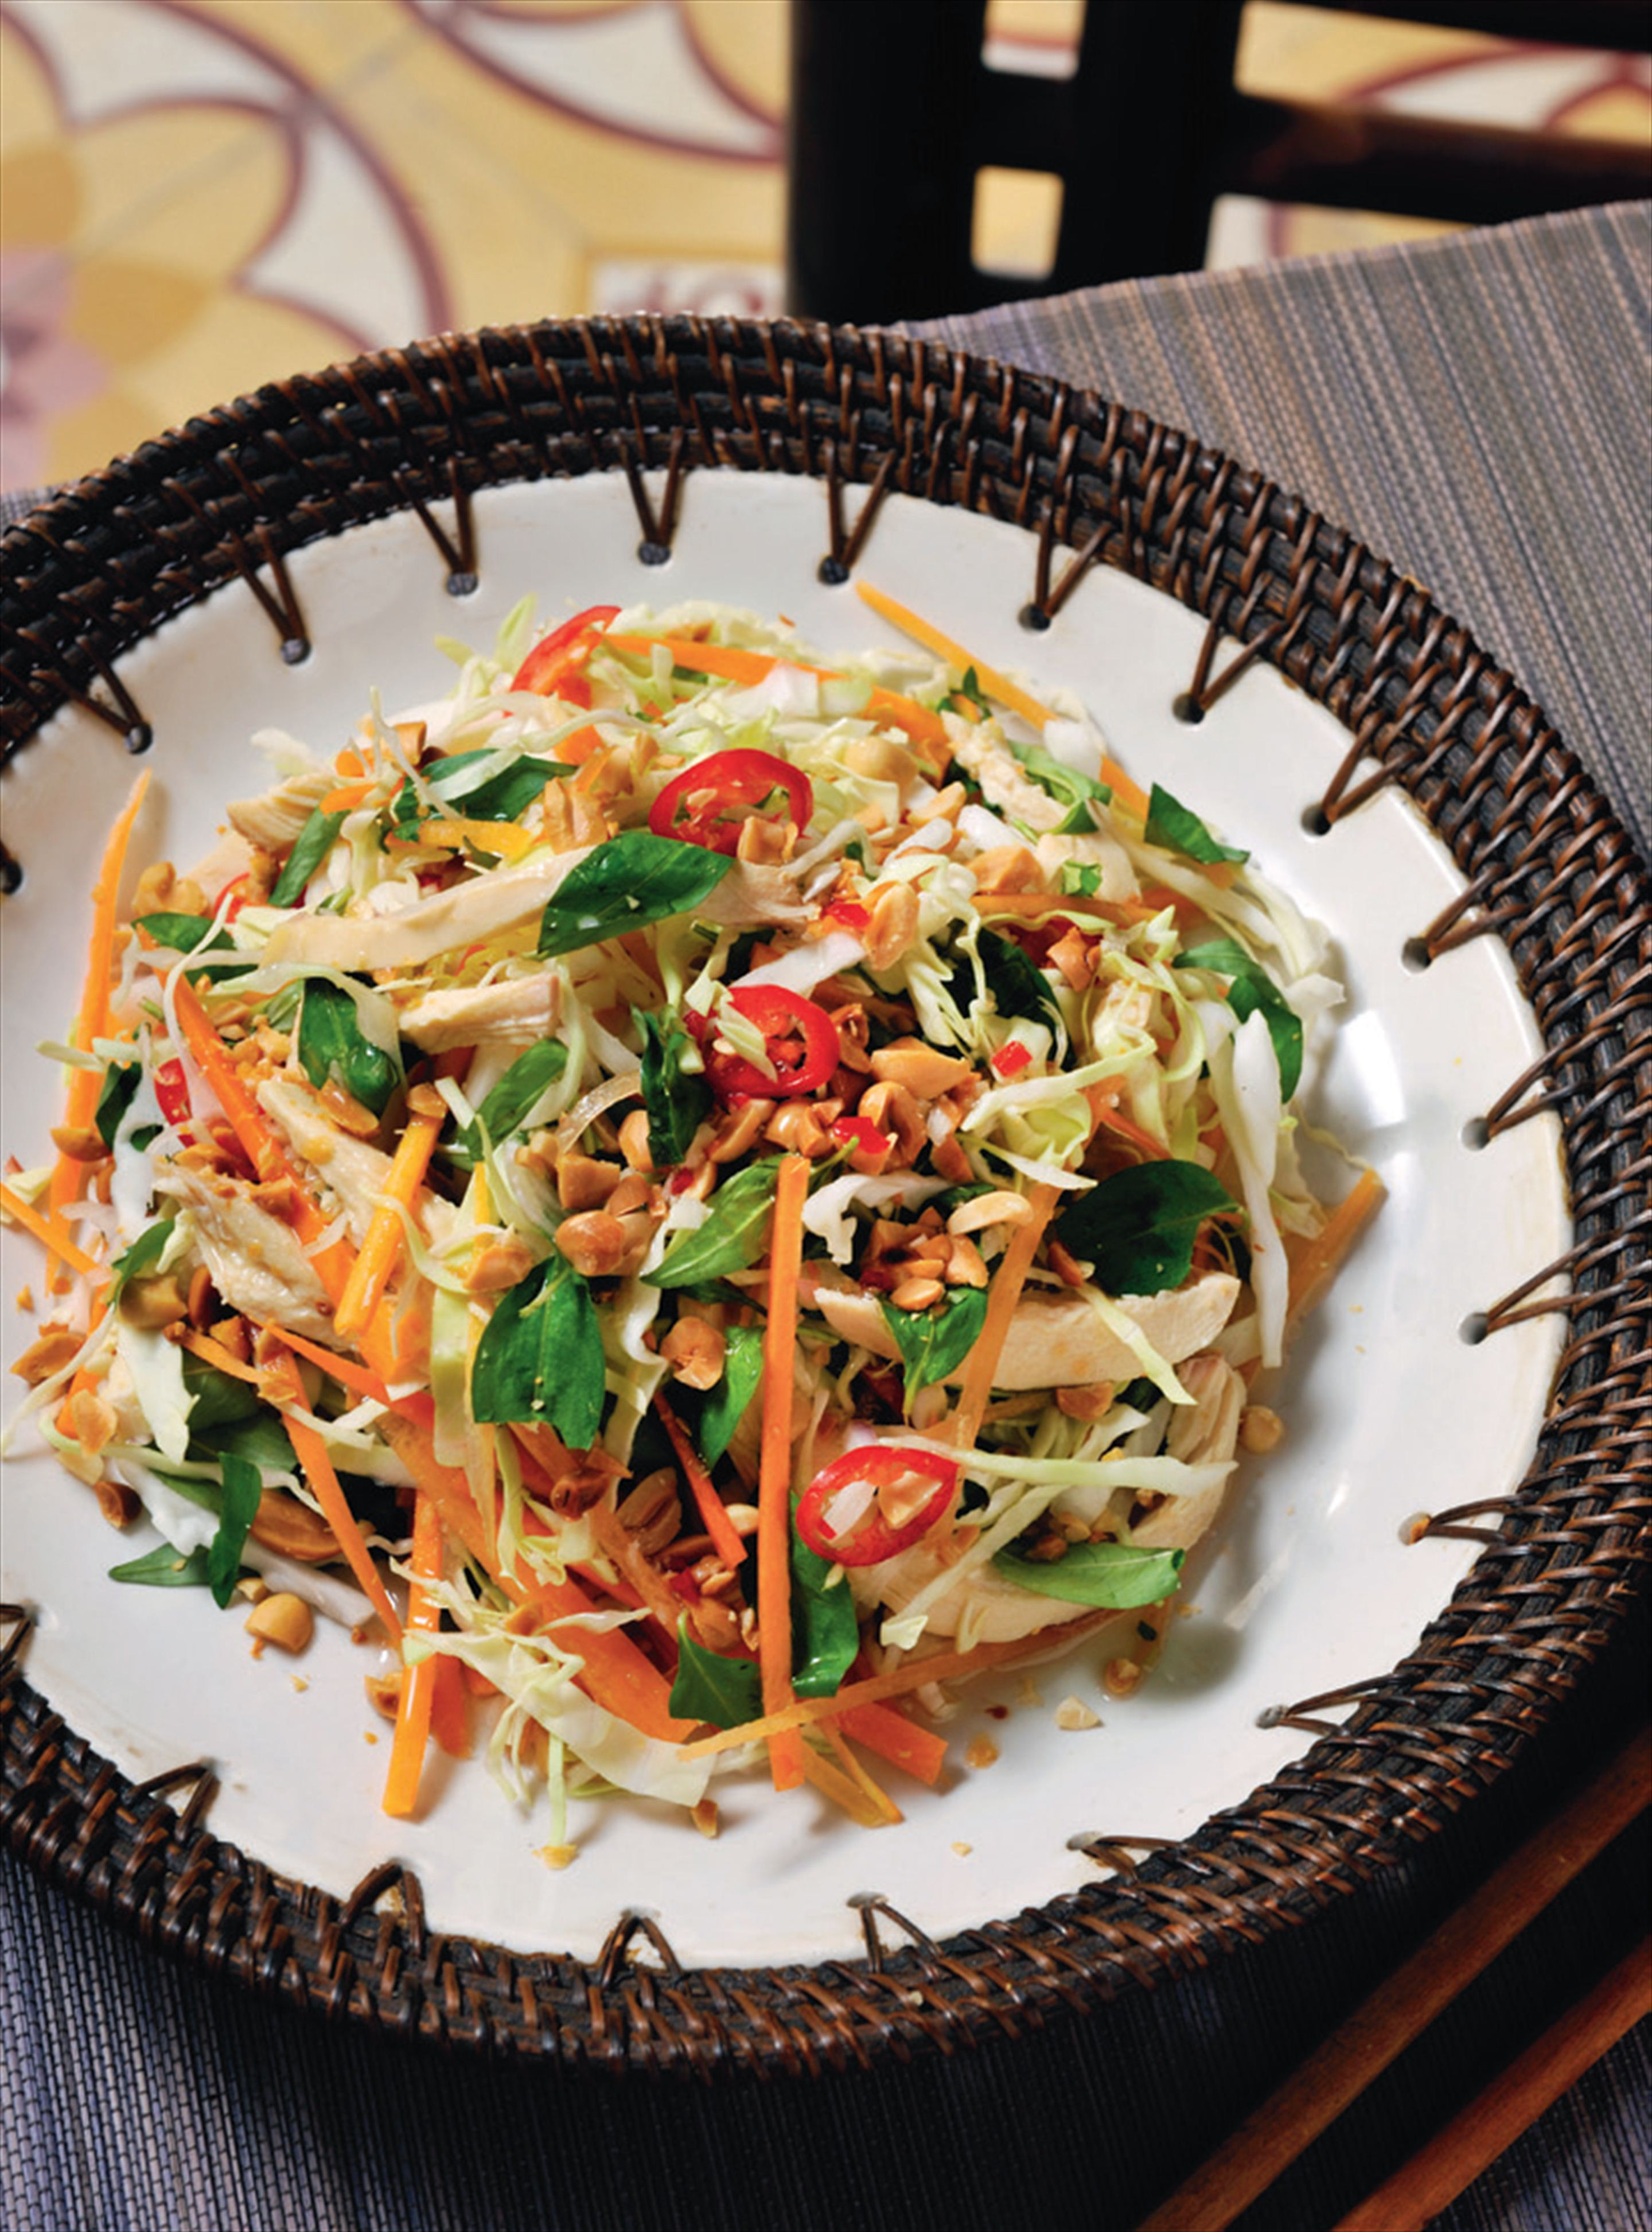 Cabbage and chicken salad with Vietnamese mint